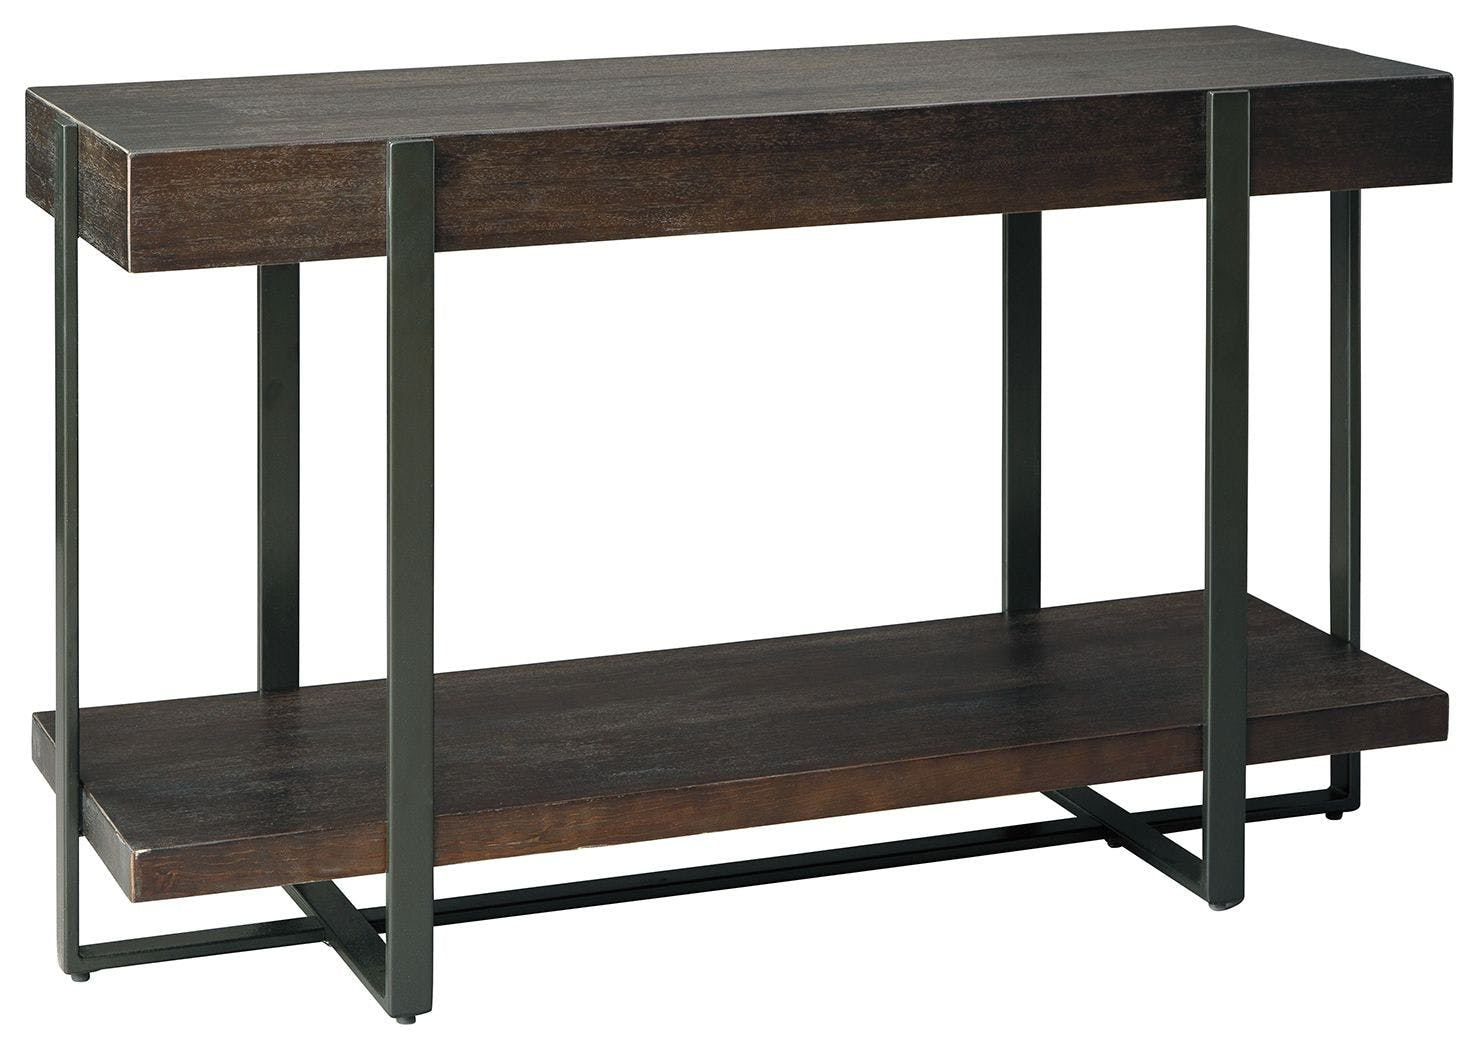 Signature Design By Ashley Living Room Drewing Sofa Console Table T321 4 Markson S Furniture